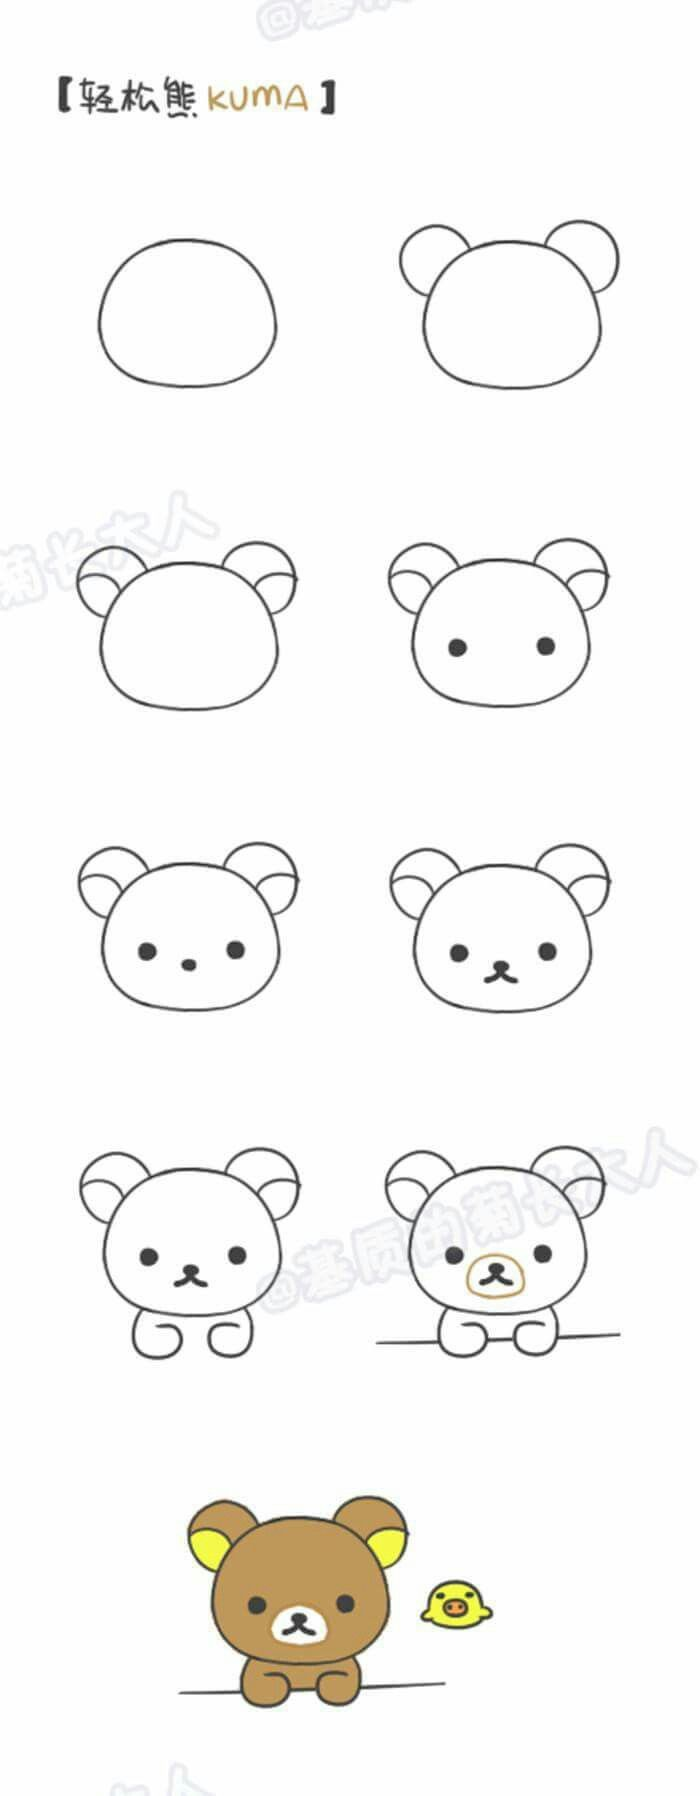 Doodle kawaii bear. How to draw. ♡ ᴘɪɴᴛᴇʀᴇsᴛ: @gregevictoria ♡